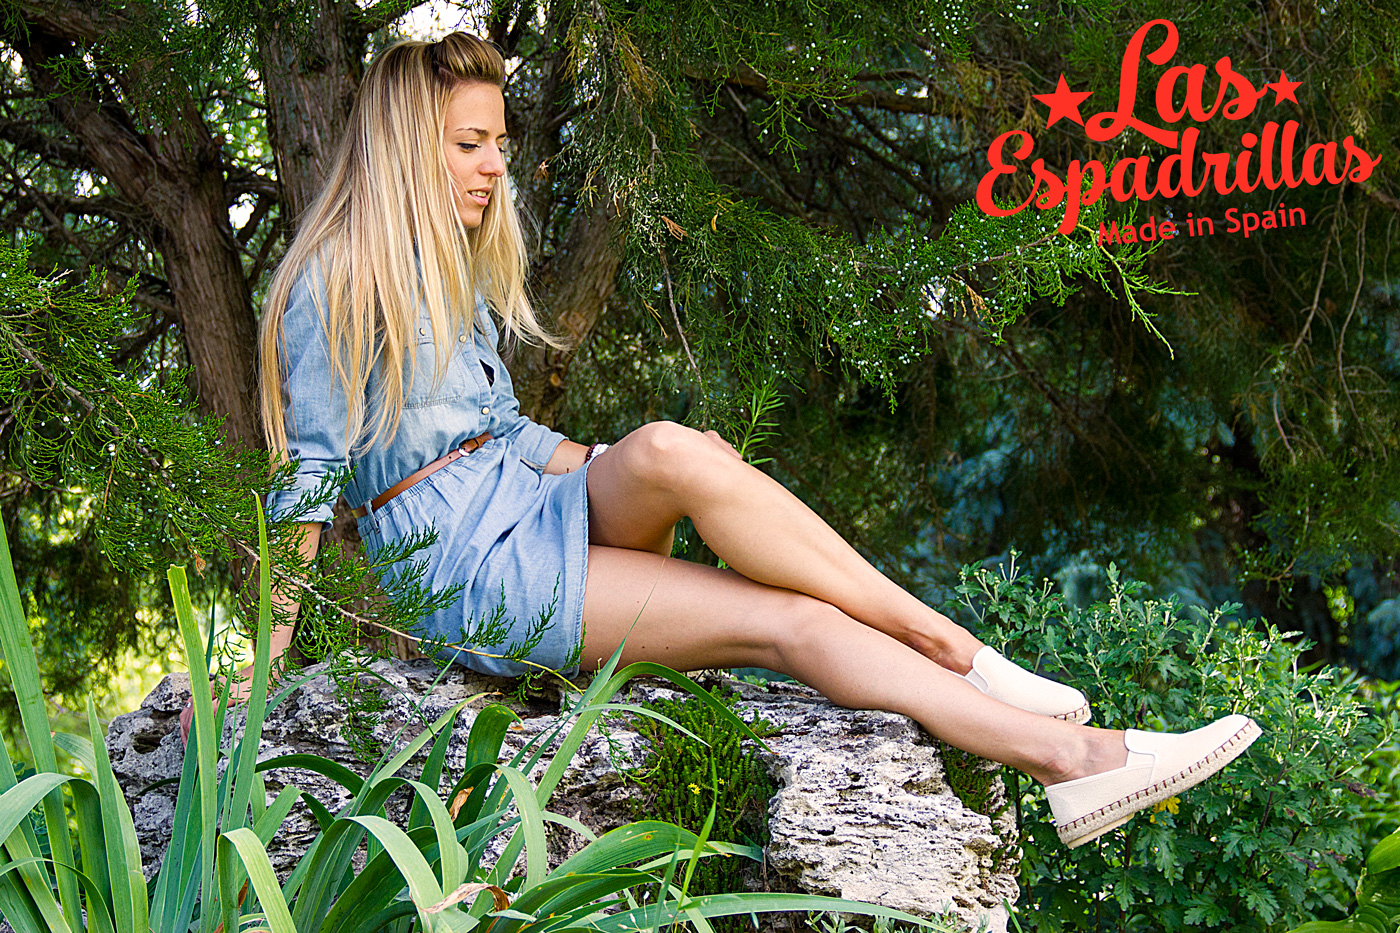 Las Espadrillas Made in Spain